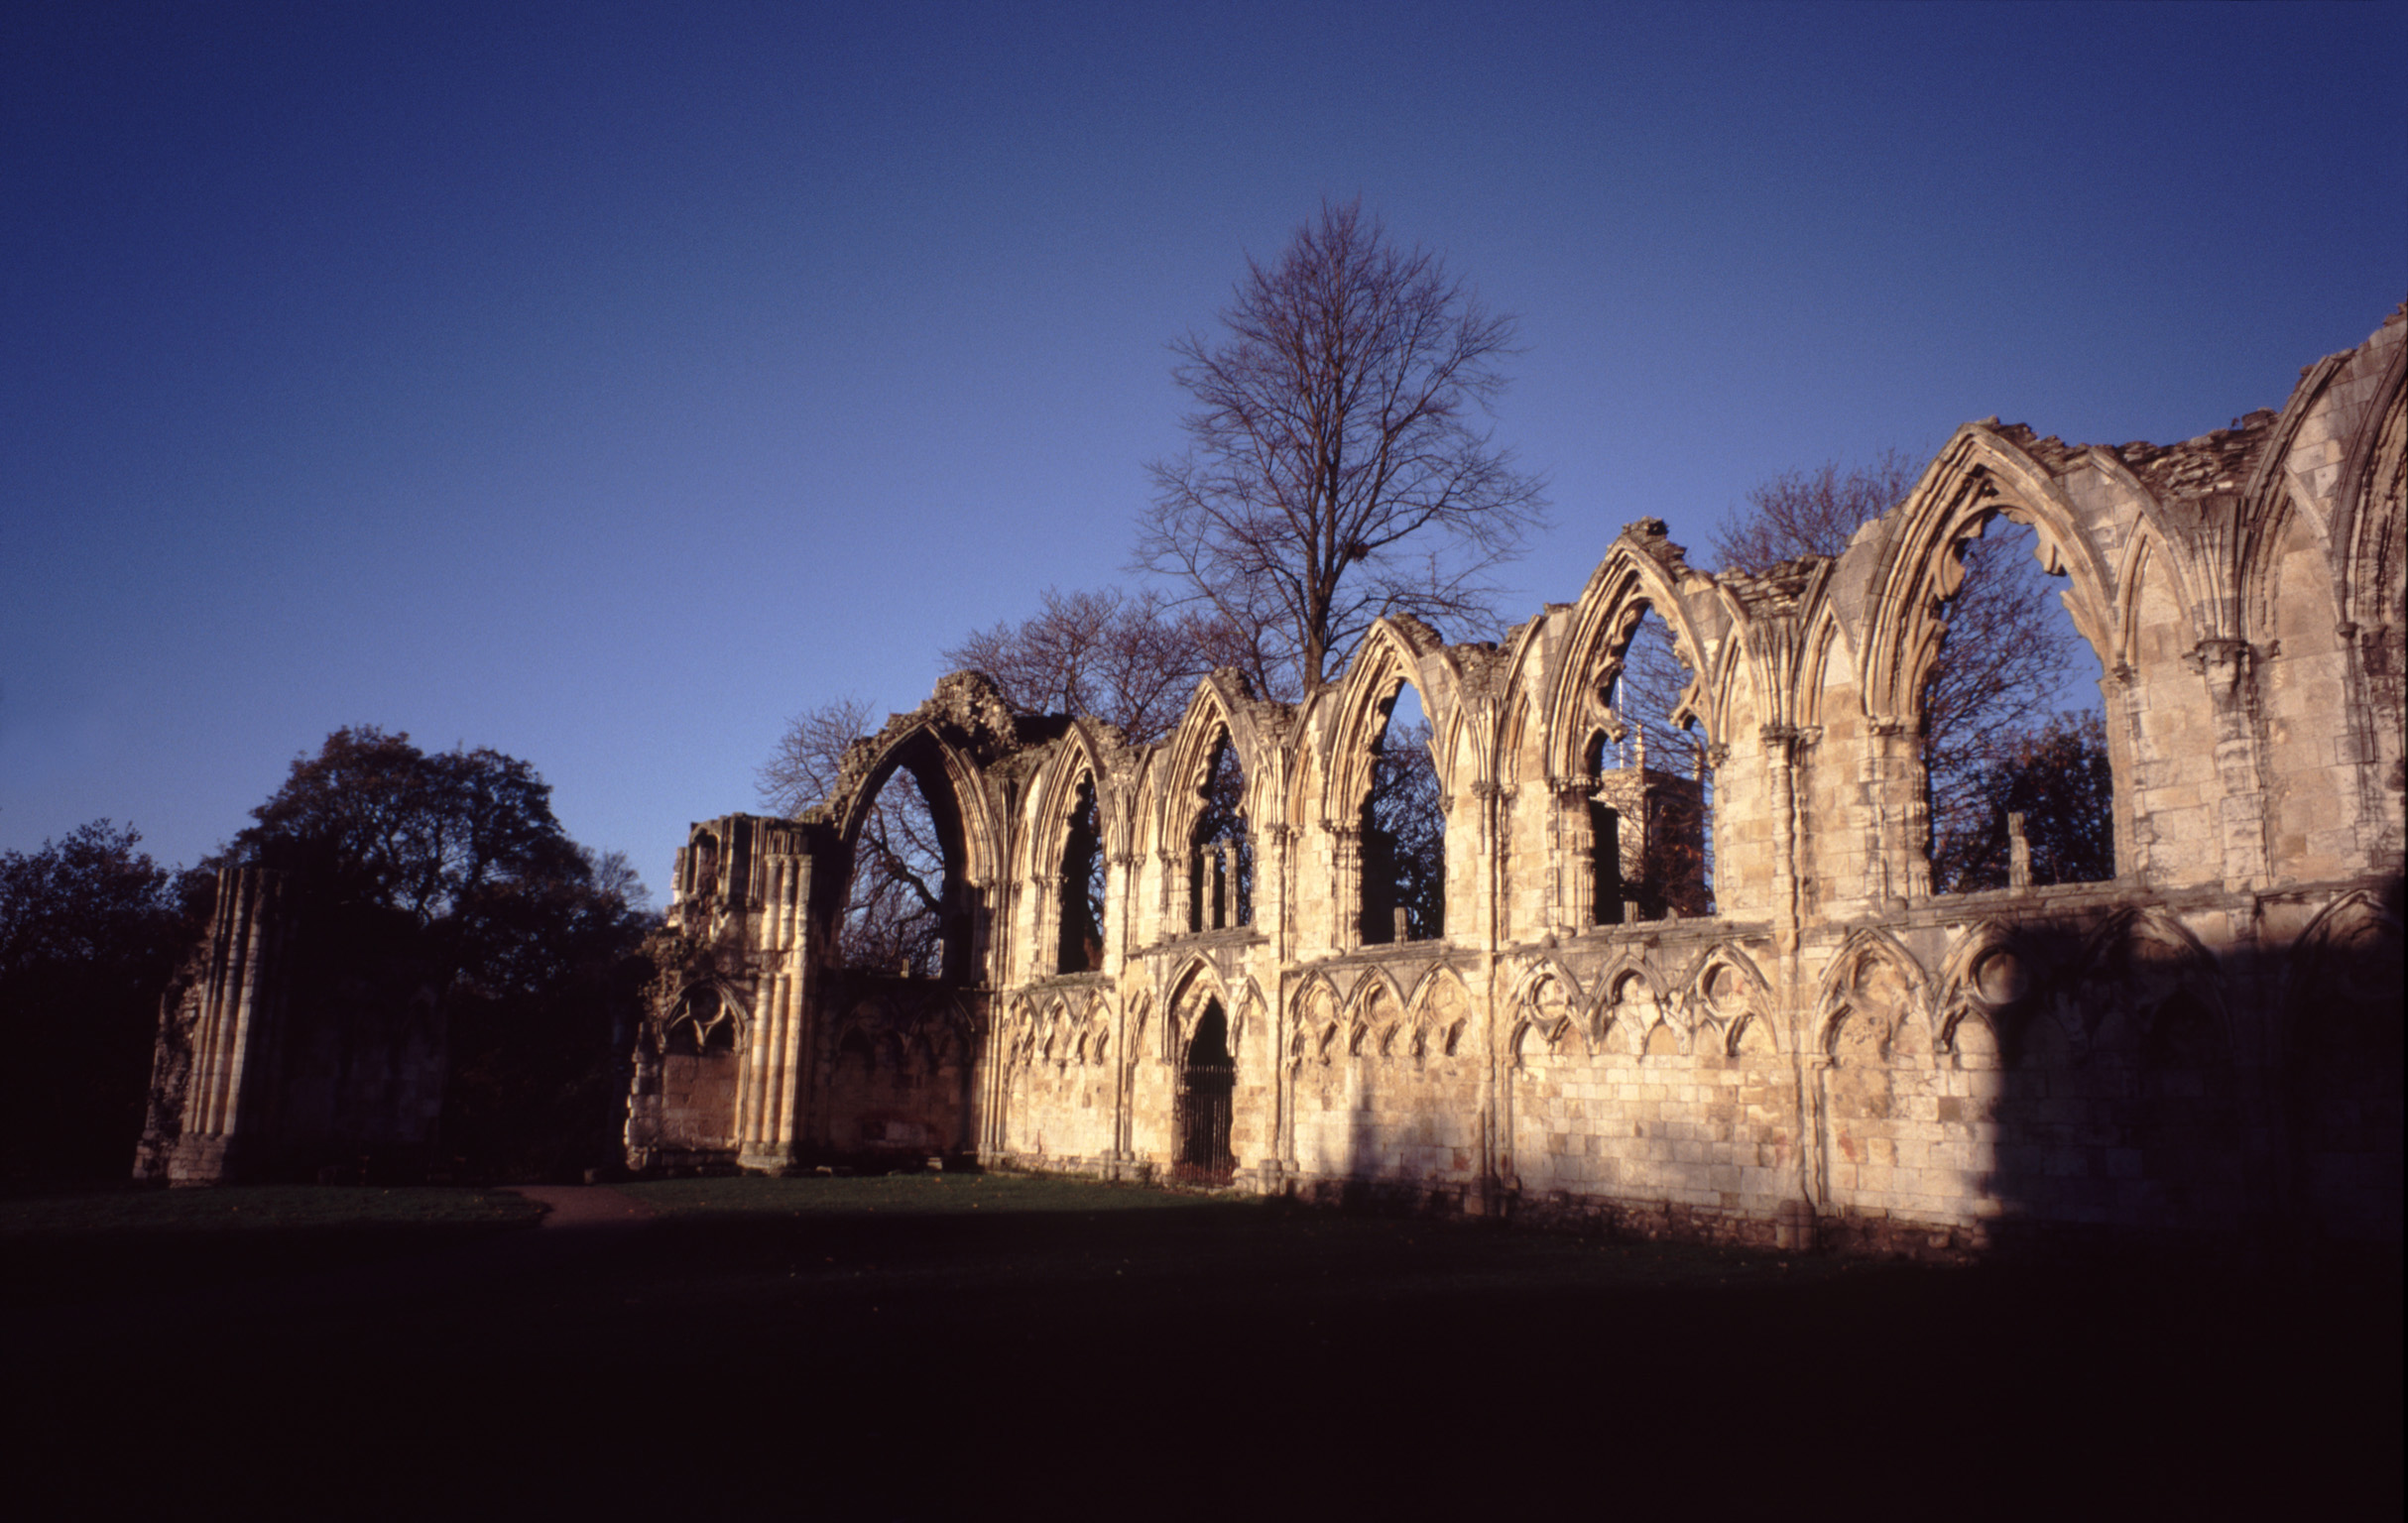 Ruins of St Mary's Abbey, a Famous Landmark in York, England. Captured at Sun Down Time.